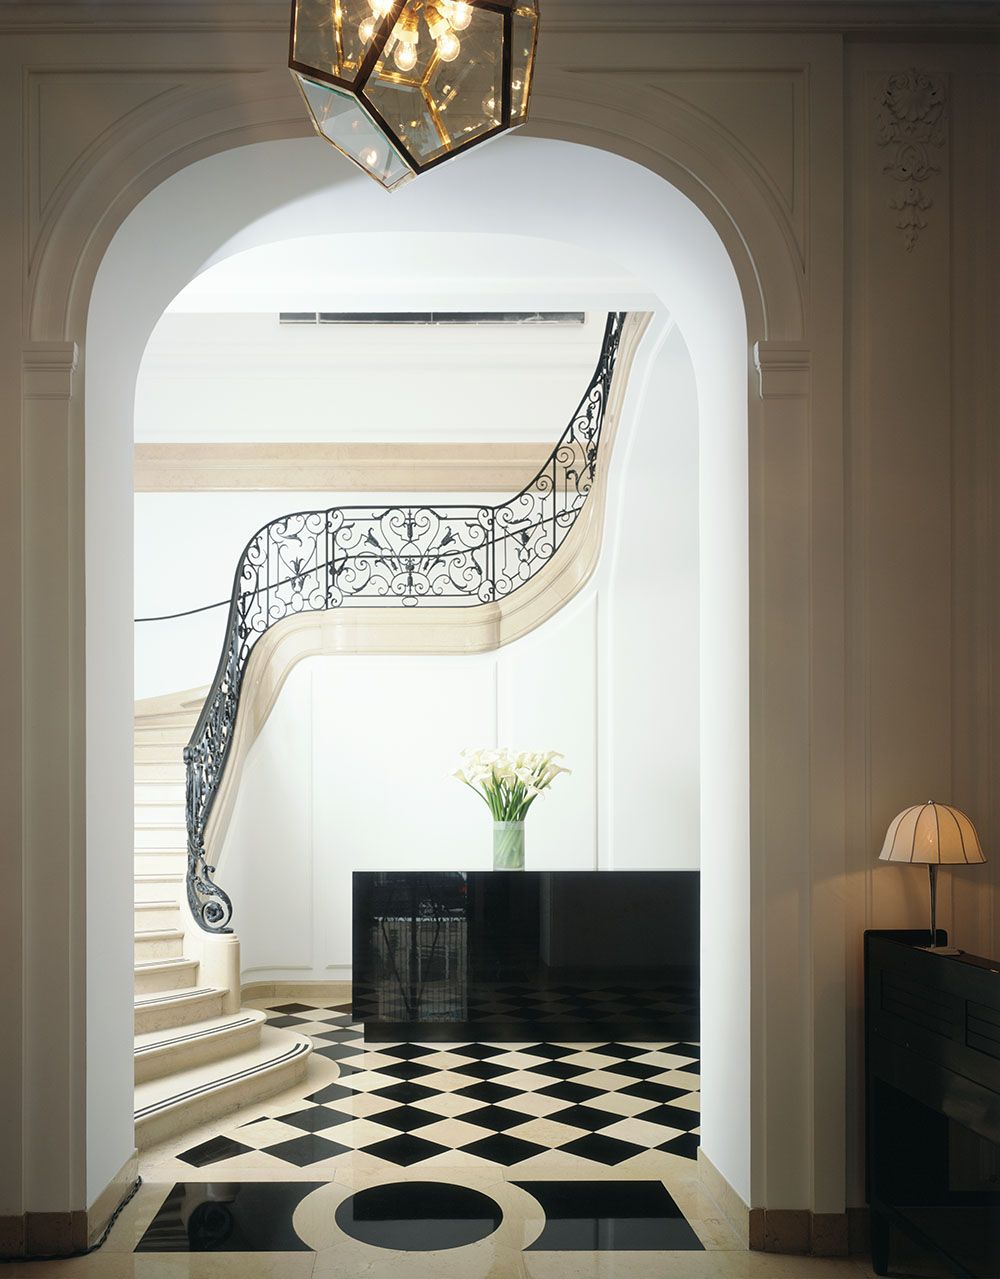 Home interior stairs neue galerie new york  stairs  pinterest  home interior and house